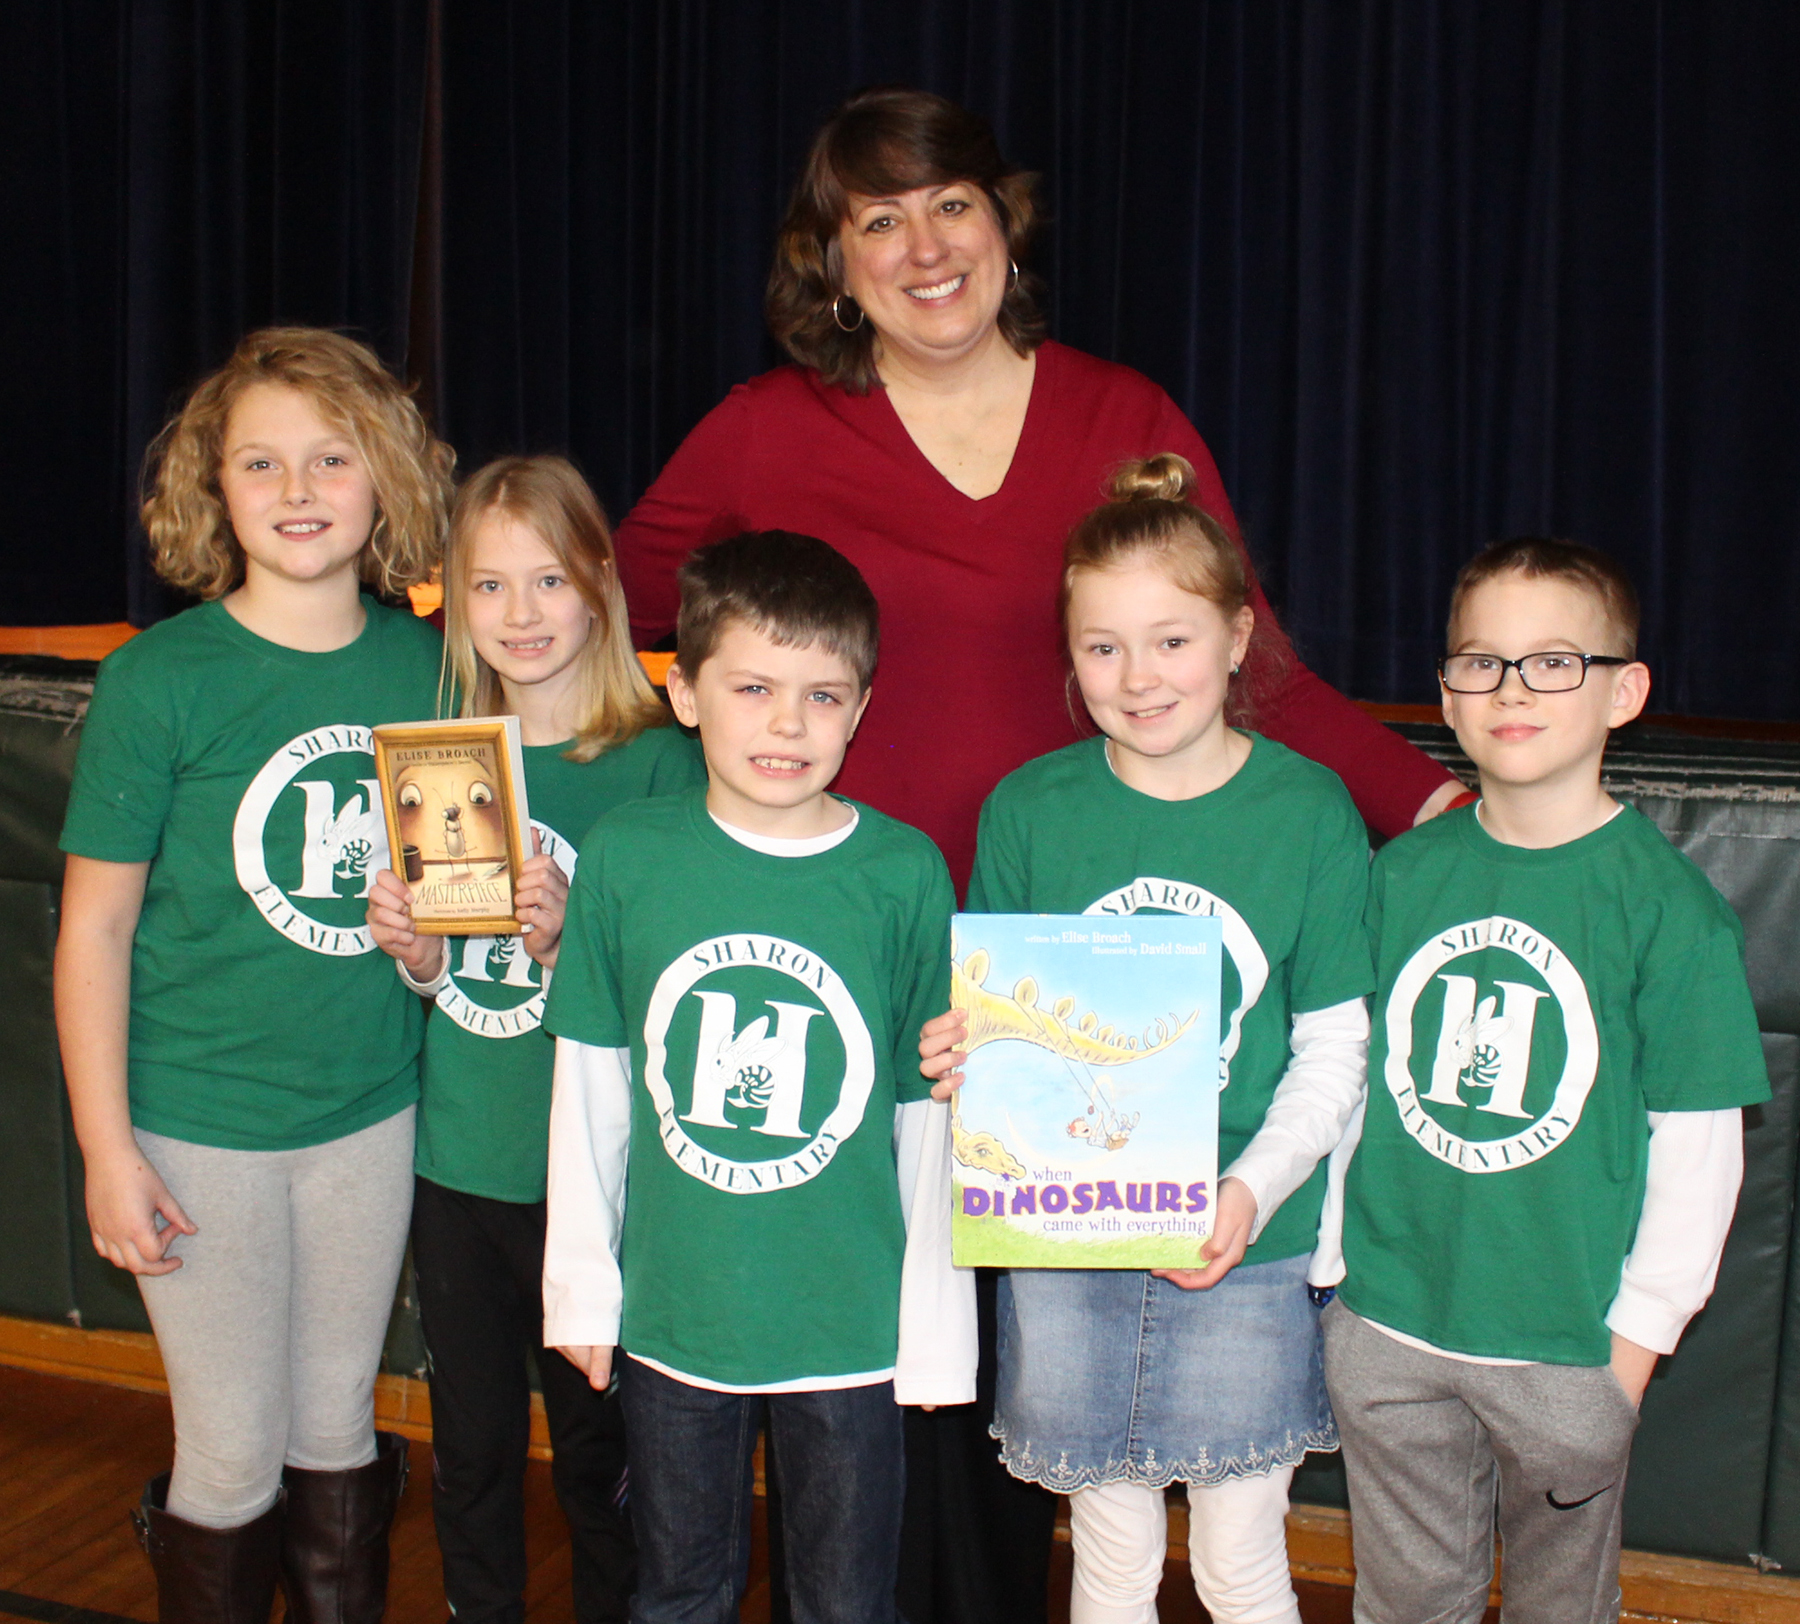 Book Author with Sharon Students